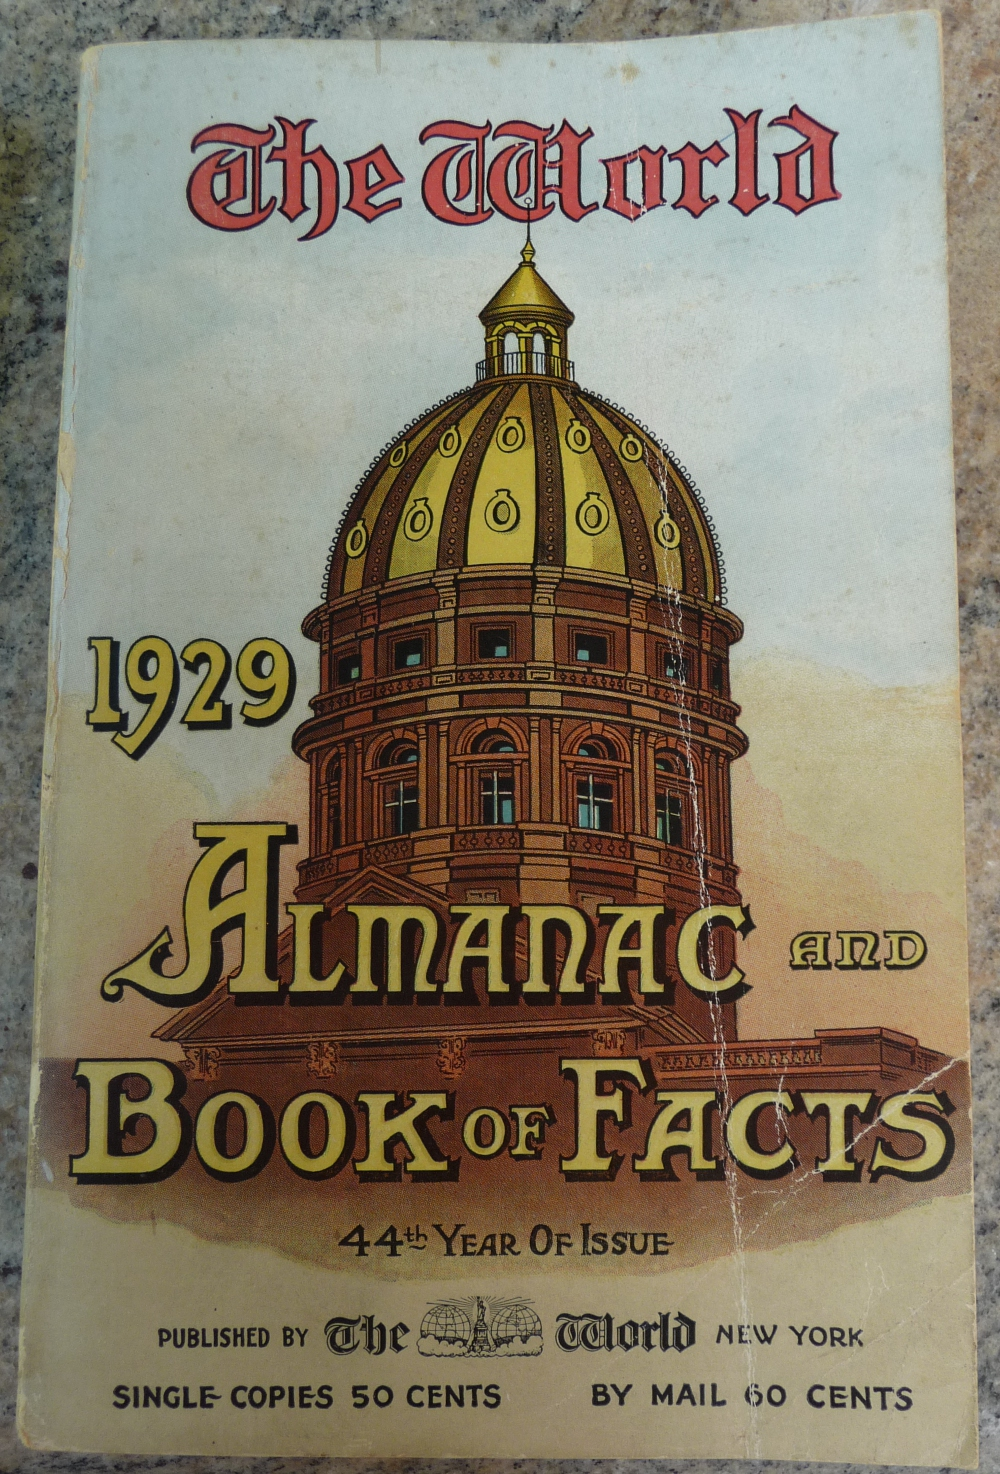 The 1929 World Almanac